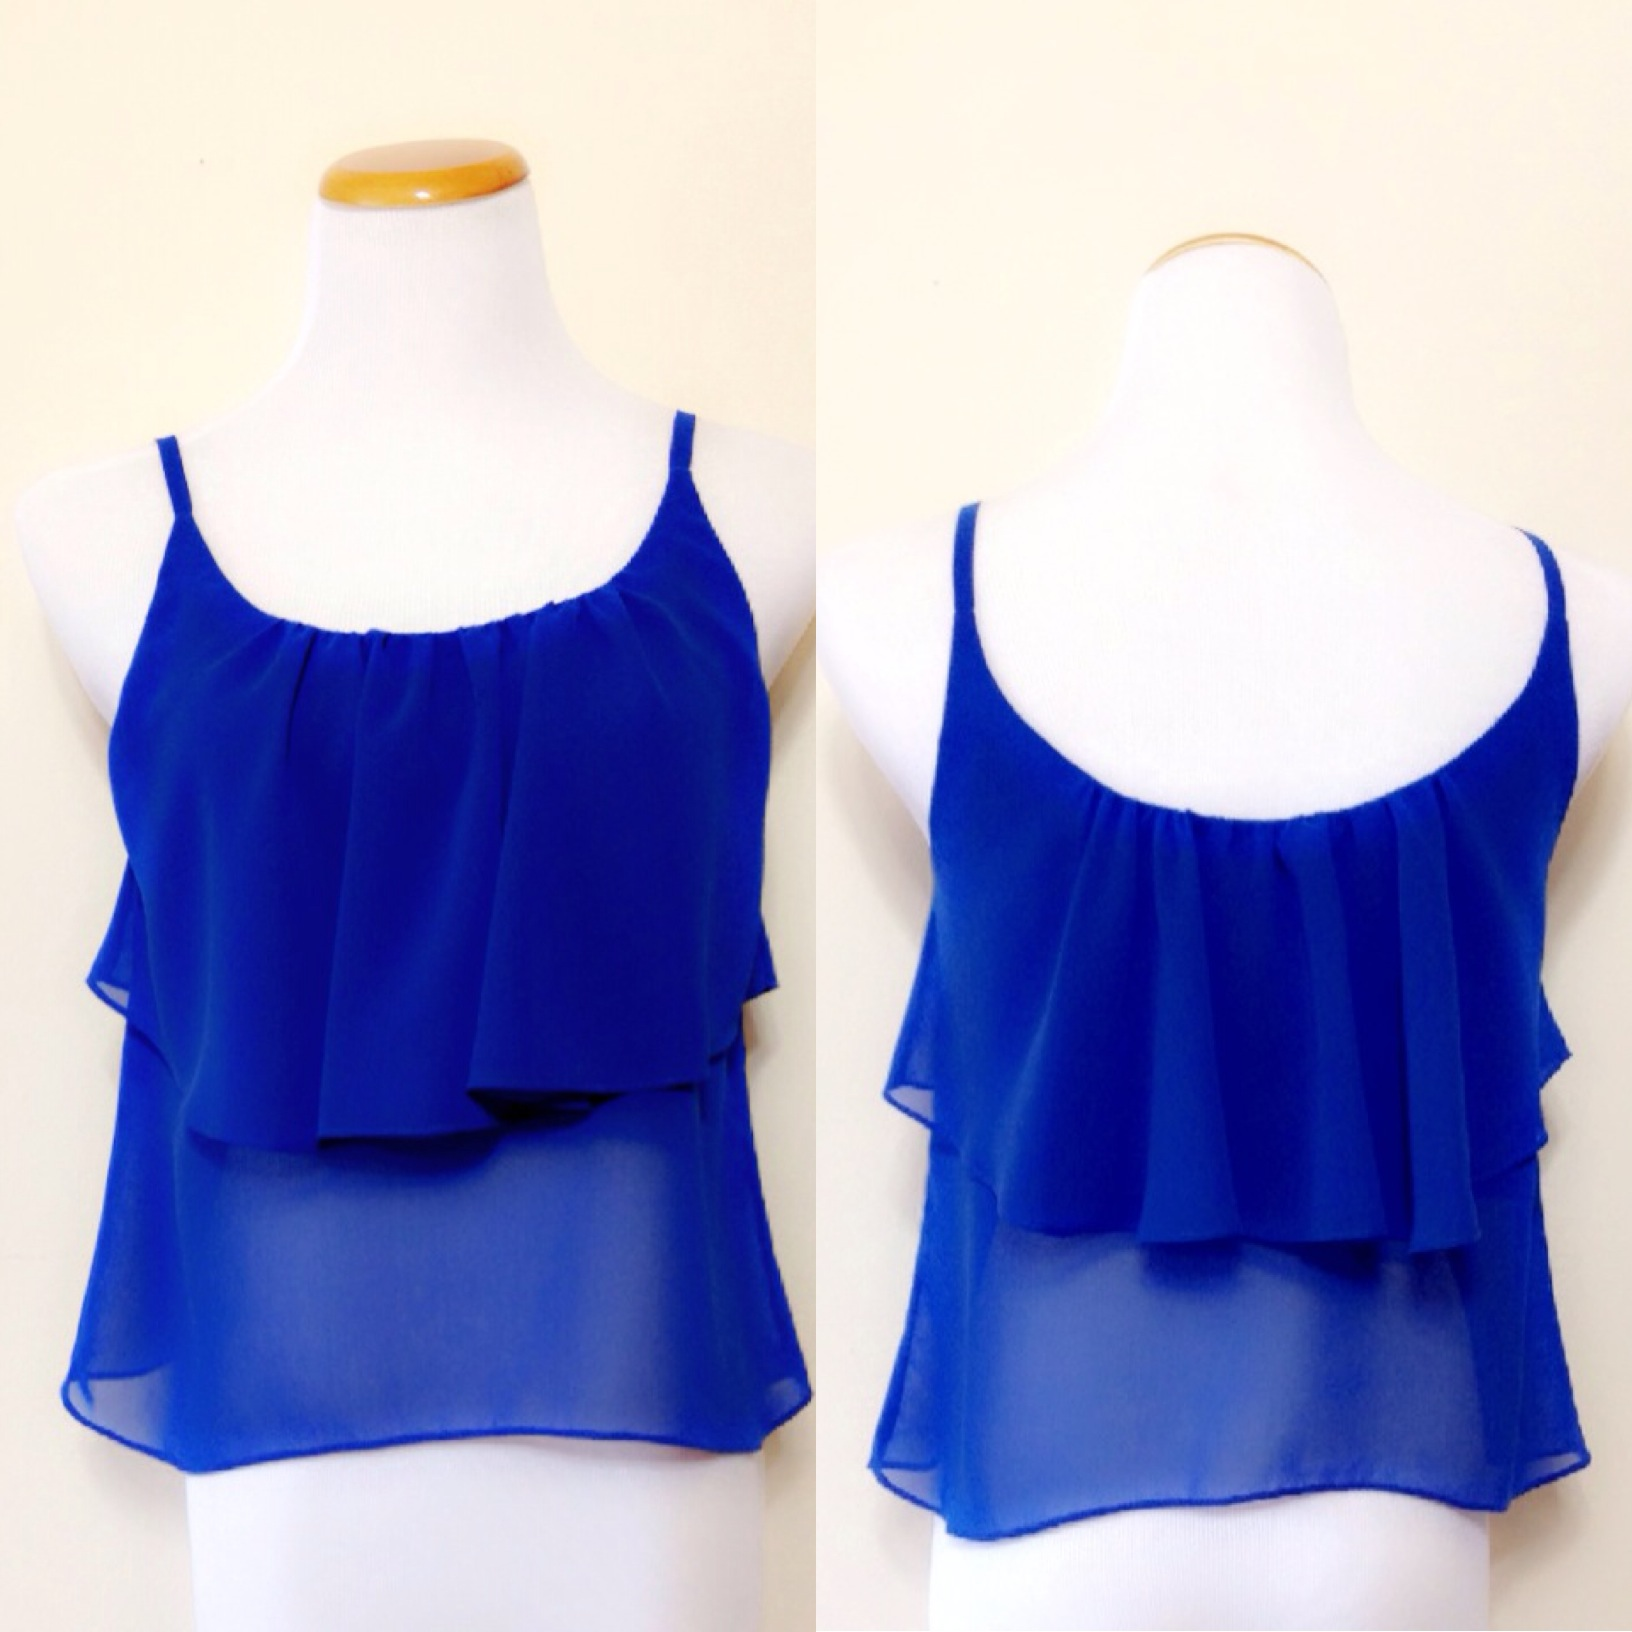 Tank Top Chiffon Blouse Royal Blue S/M/L · Style by Apple · Online ...